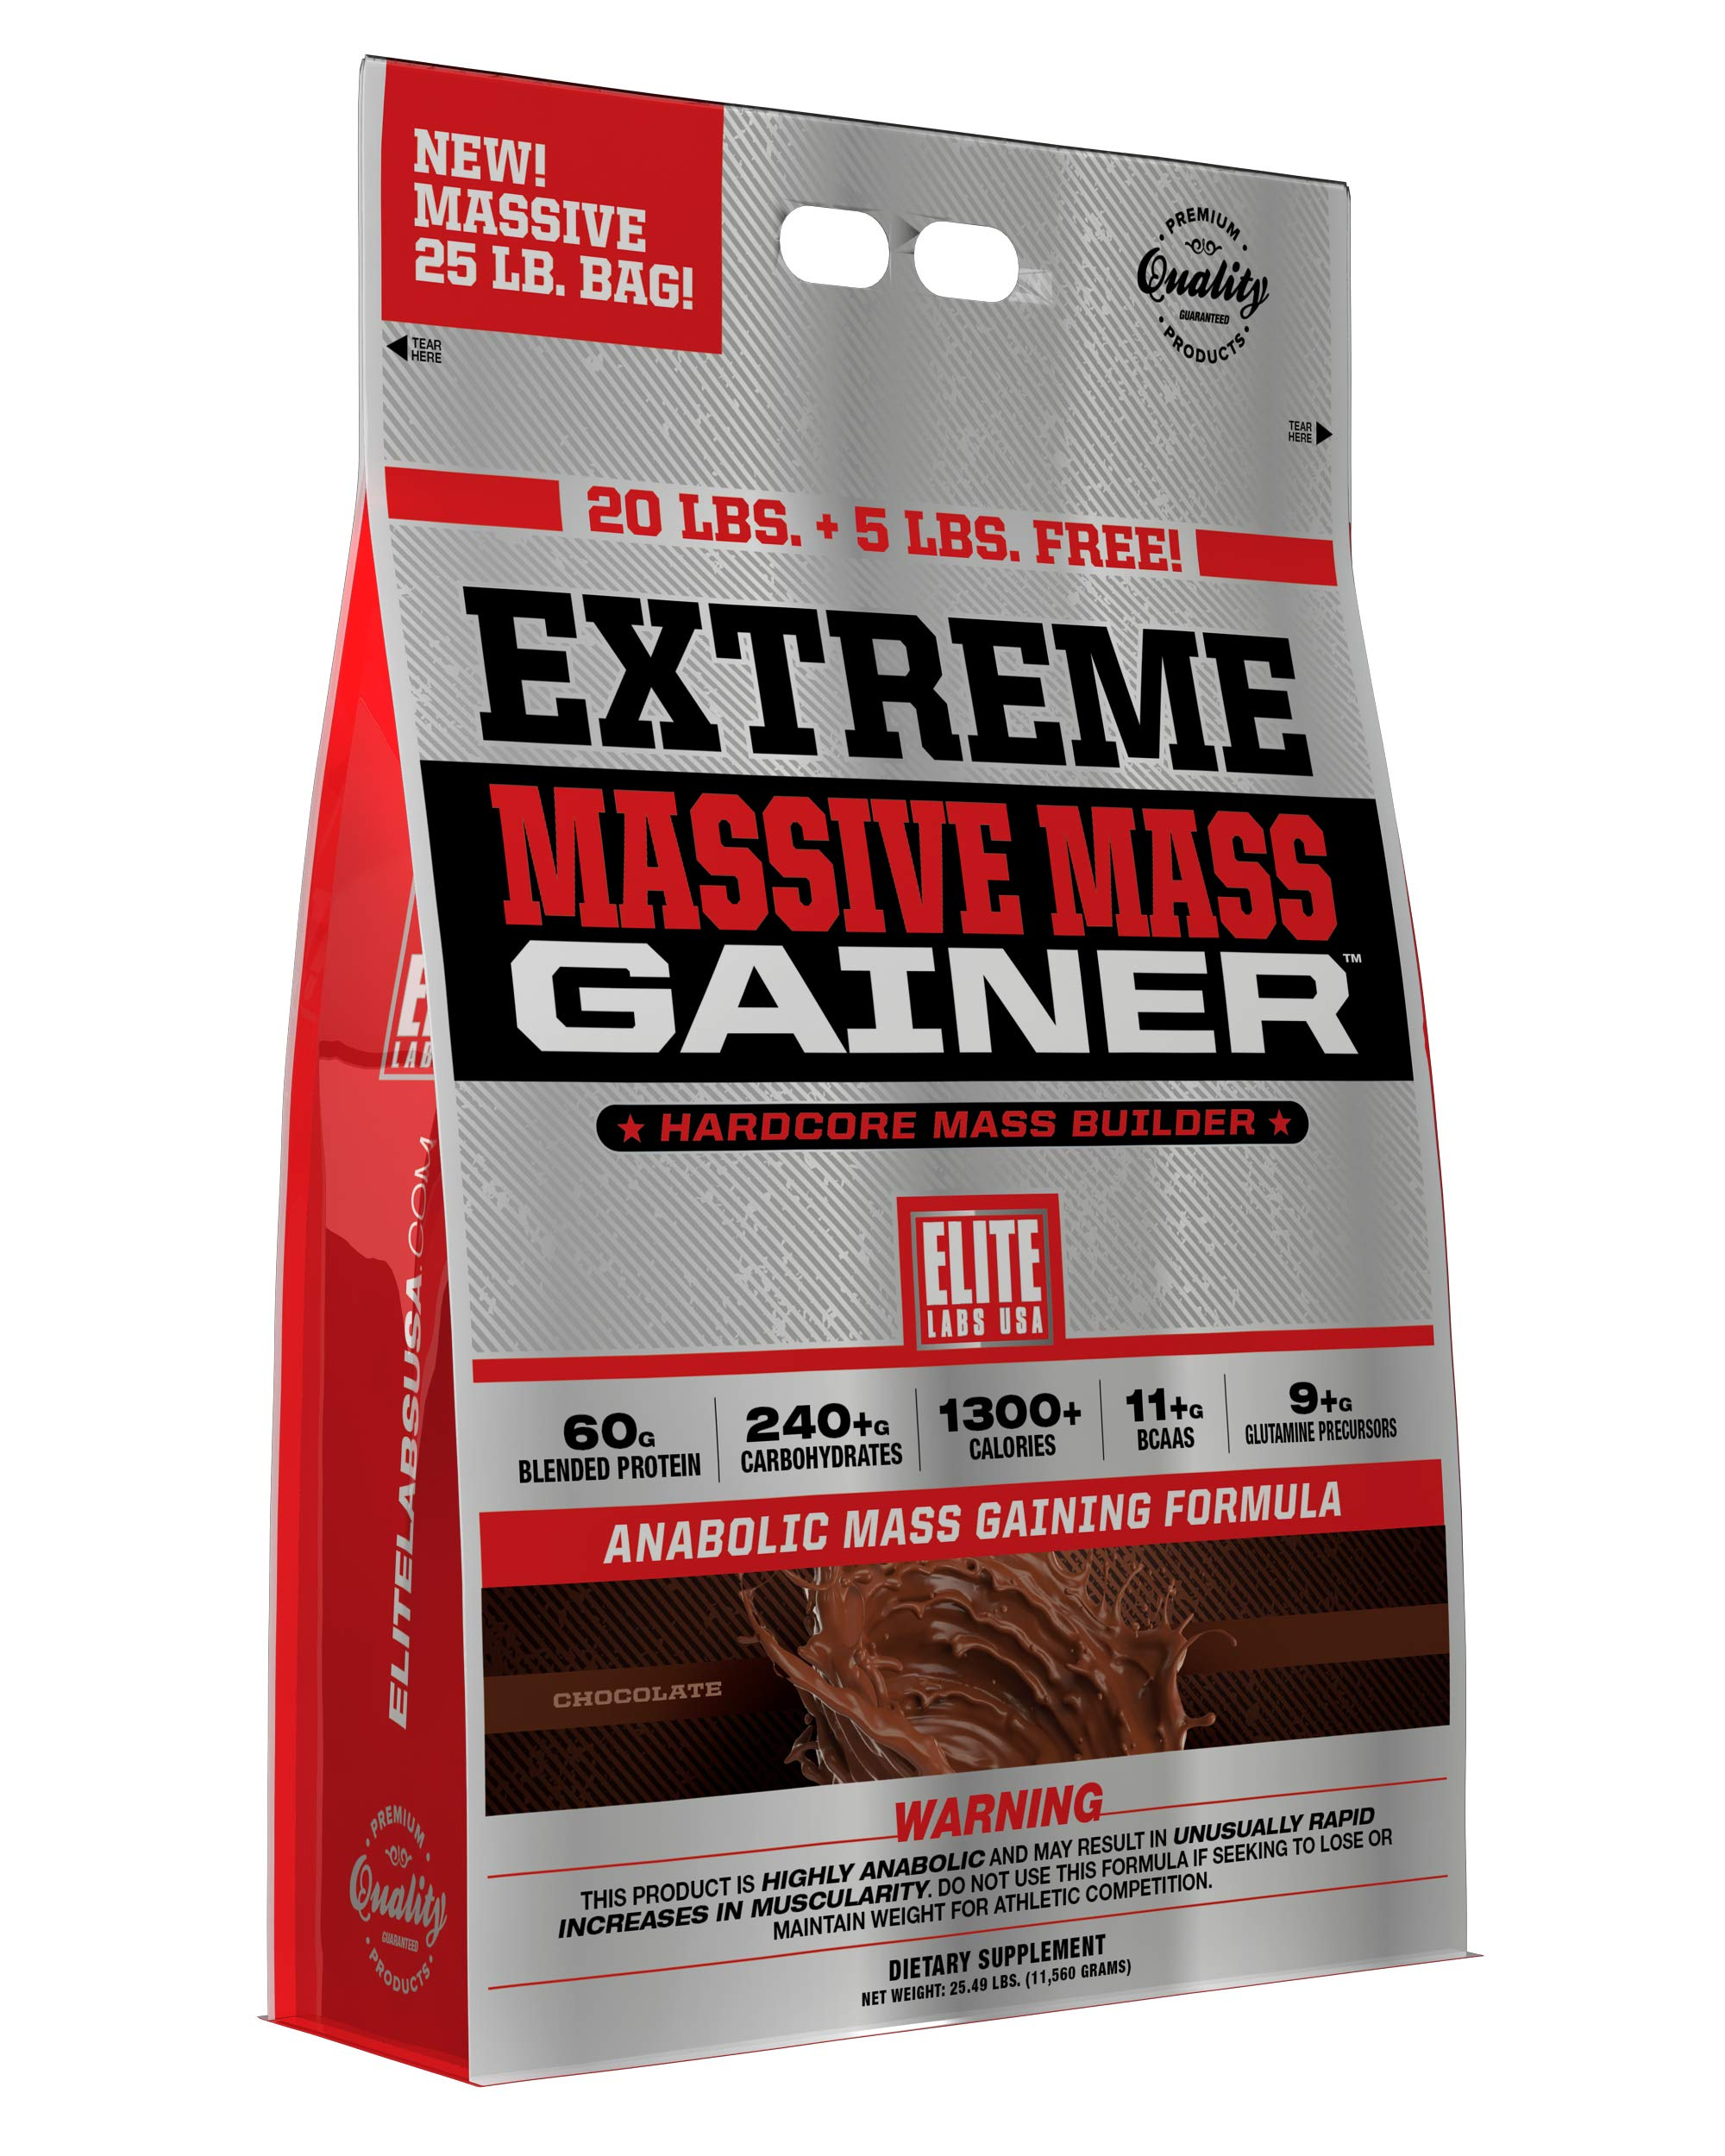 Elite Labs USA Extreme Massive Mass Gainer 25 Pound, Chocolate by Elite Labs USA (Image #1)